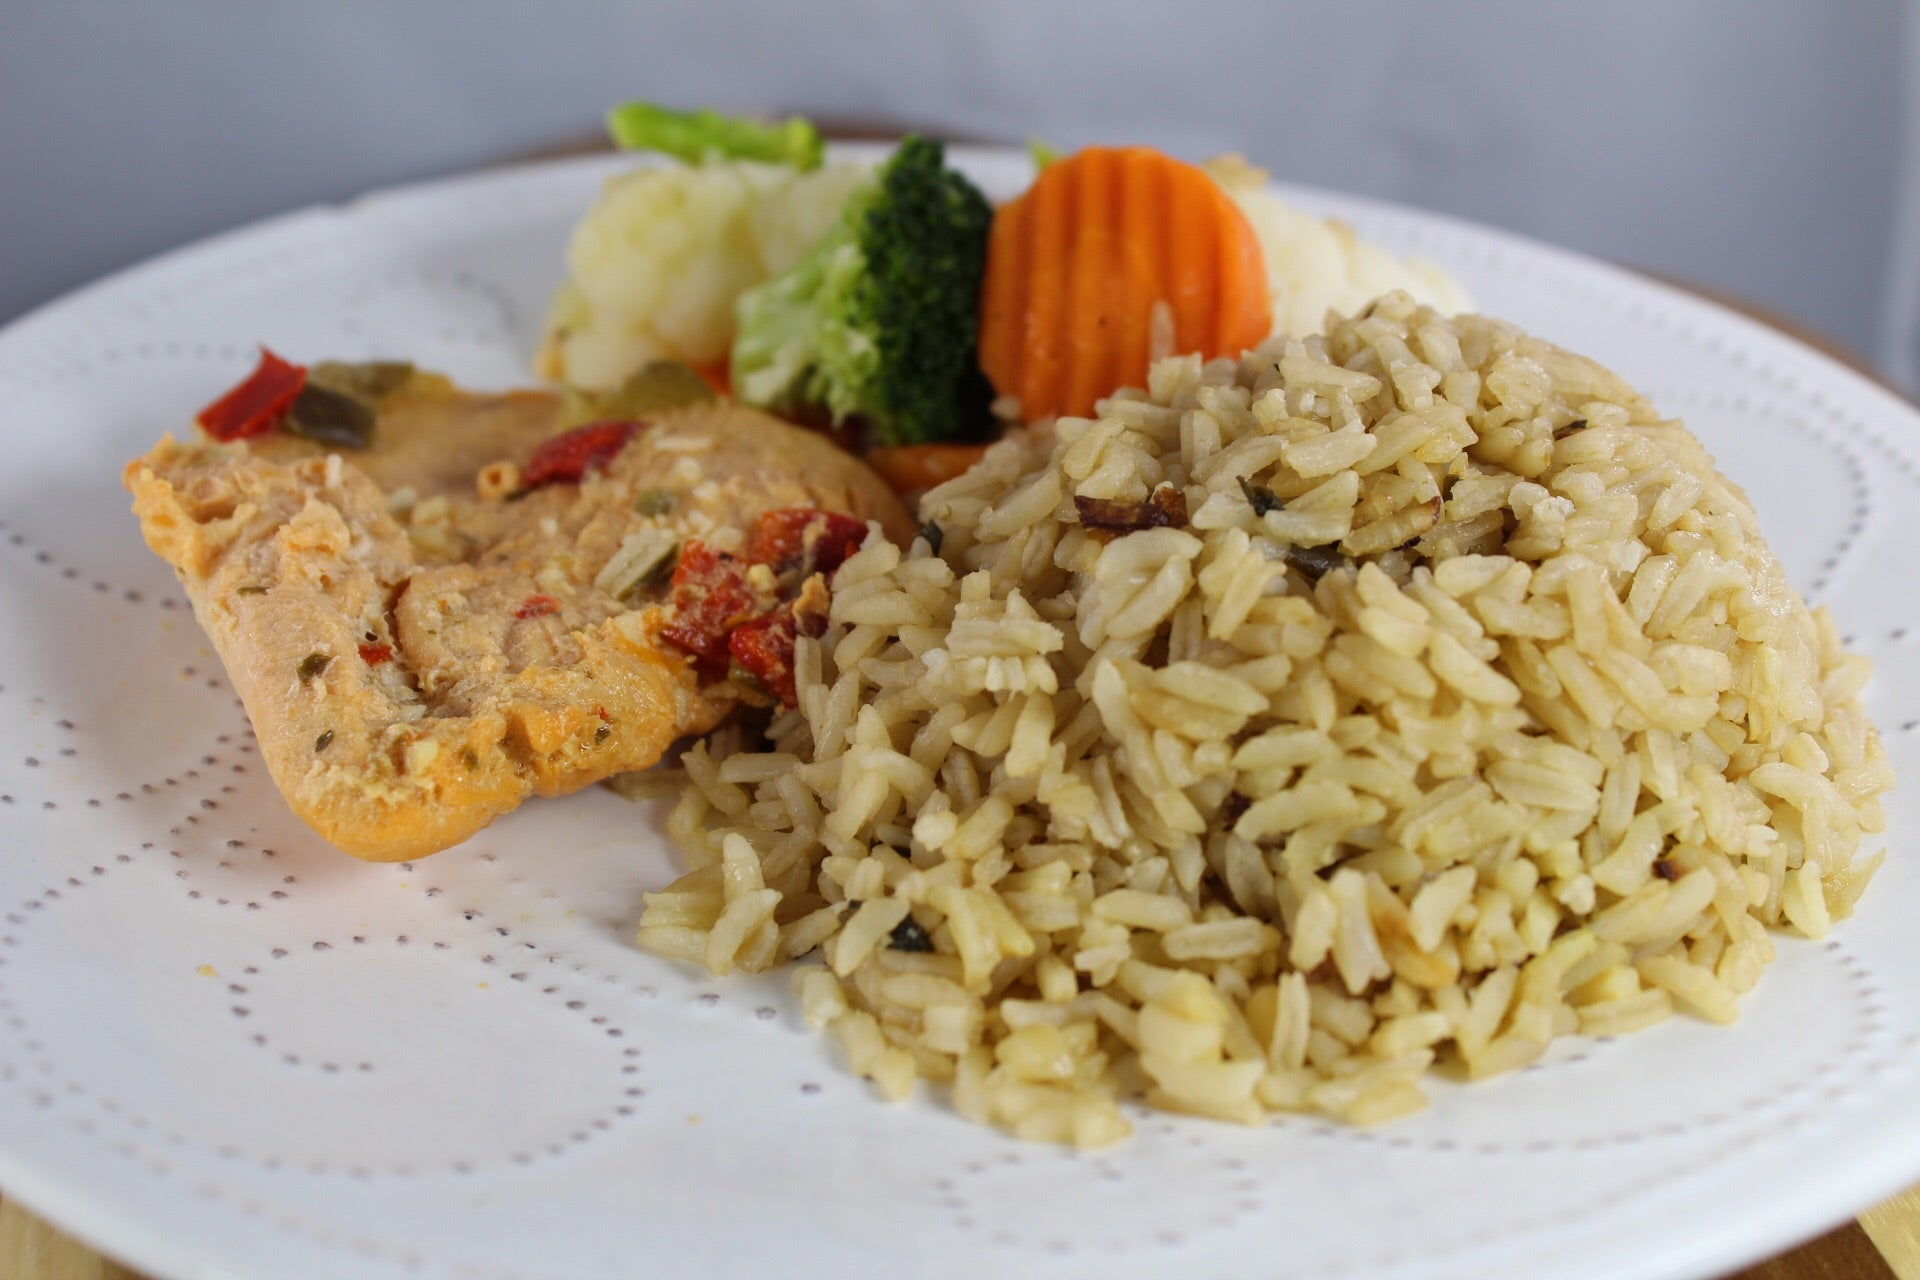 Arroz con Consomé y Pechuga Guisada / Rice with Consomé and Stewed Chicken Breast